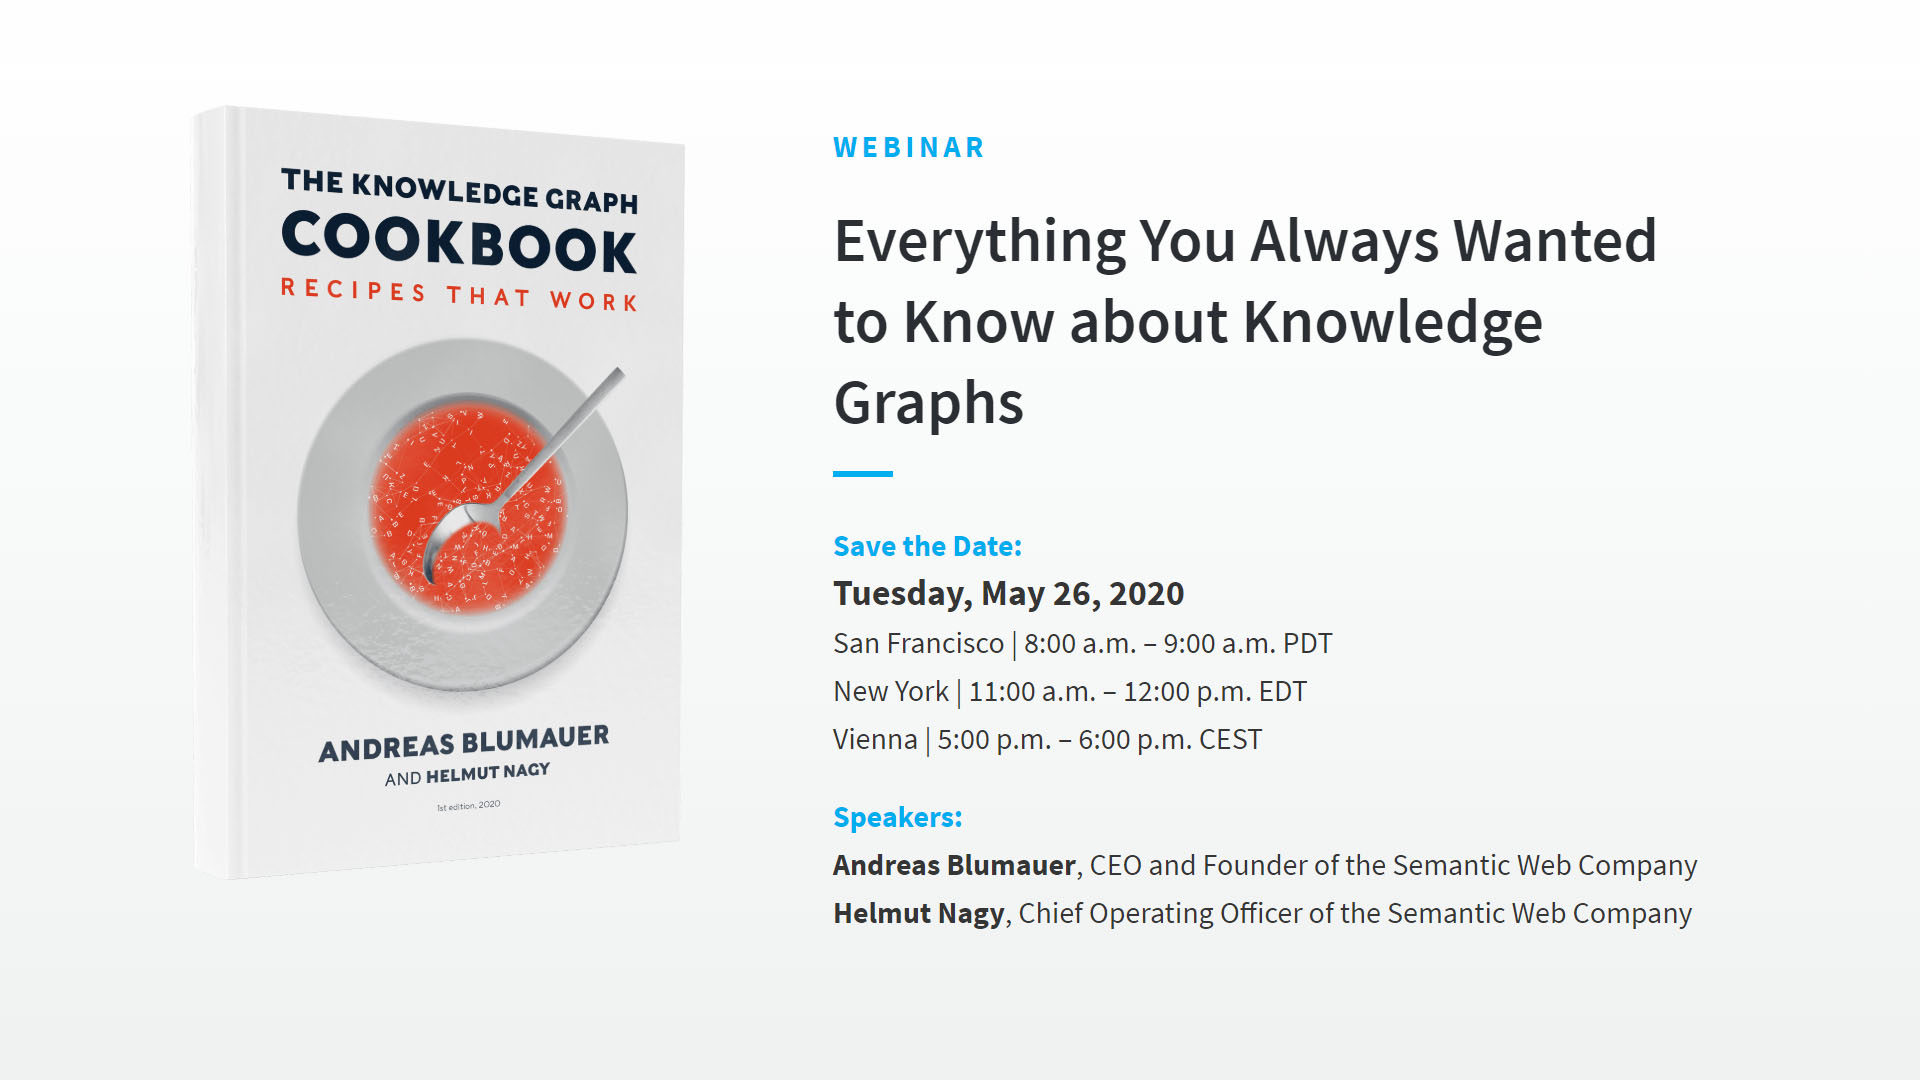 Everything You Always Wanted to Know about Knowledge Graphs